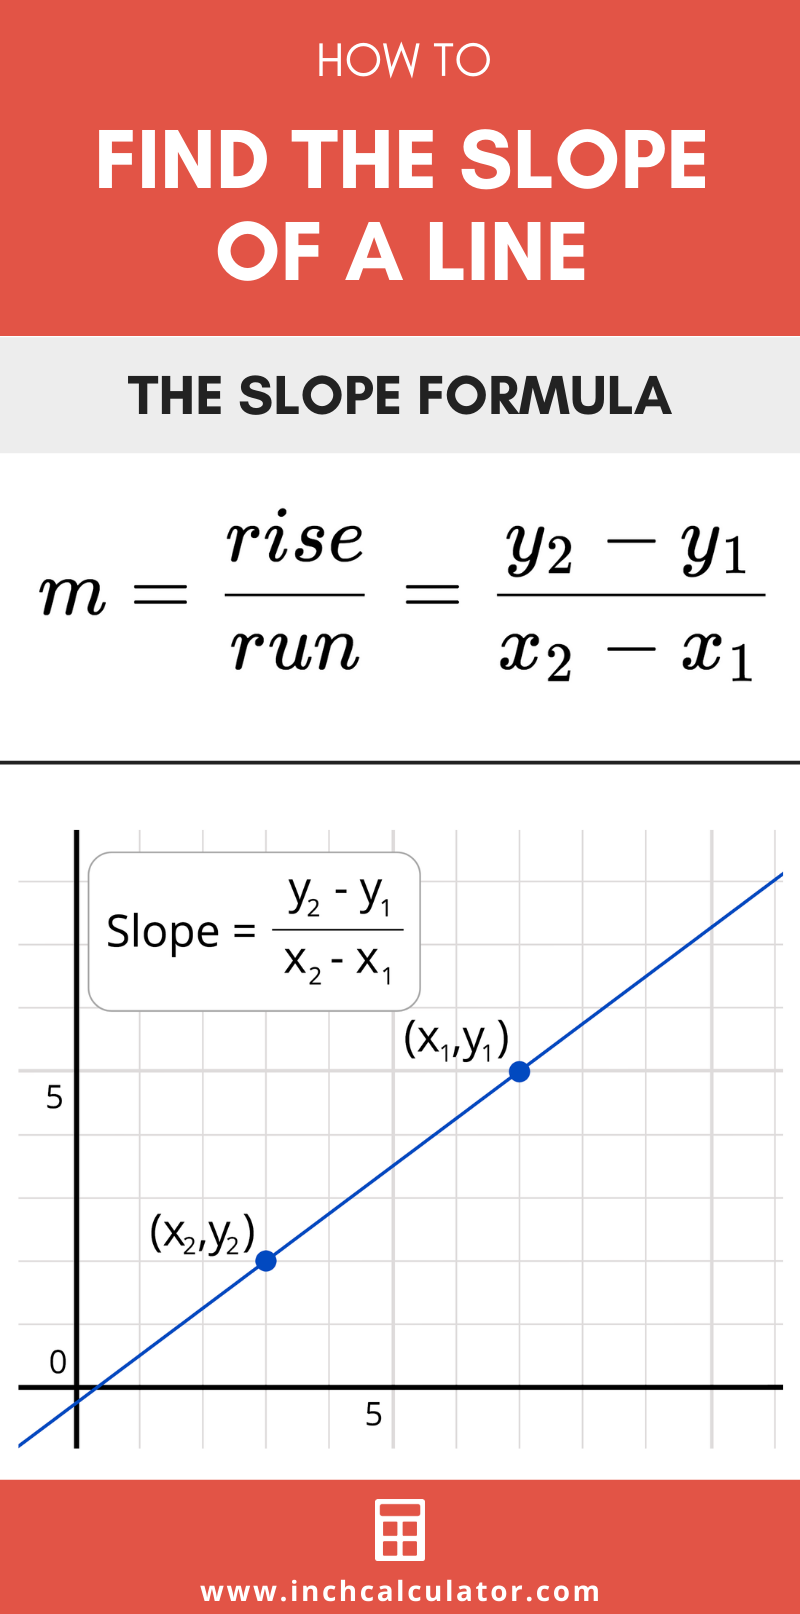 Infographic showing how to find the slope of a line using the slope formula, which states that slope is equal to rise over run